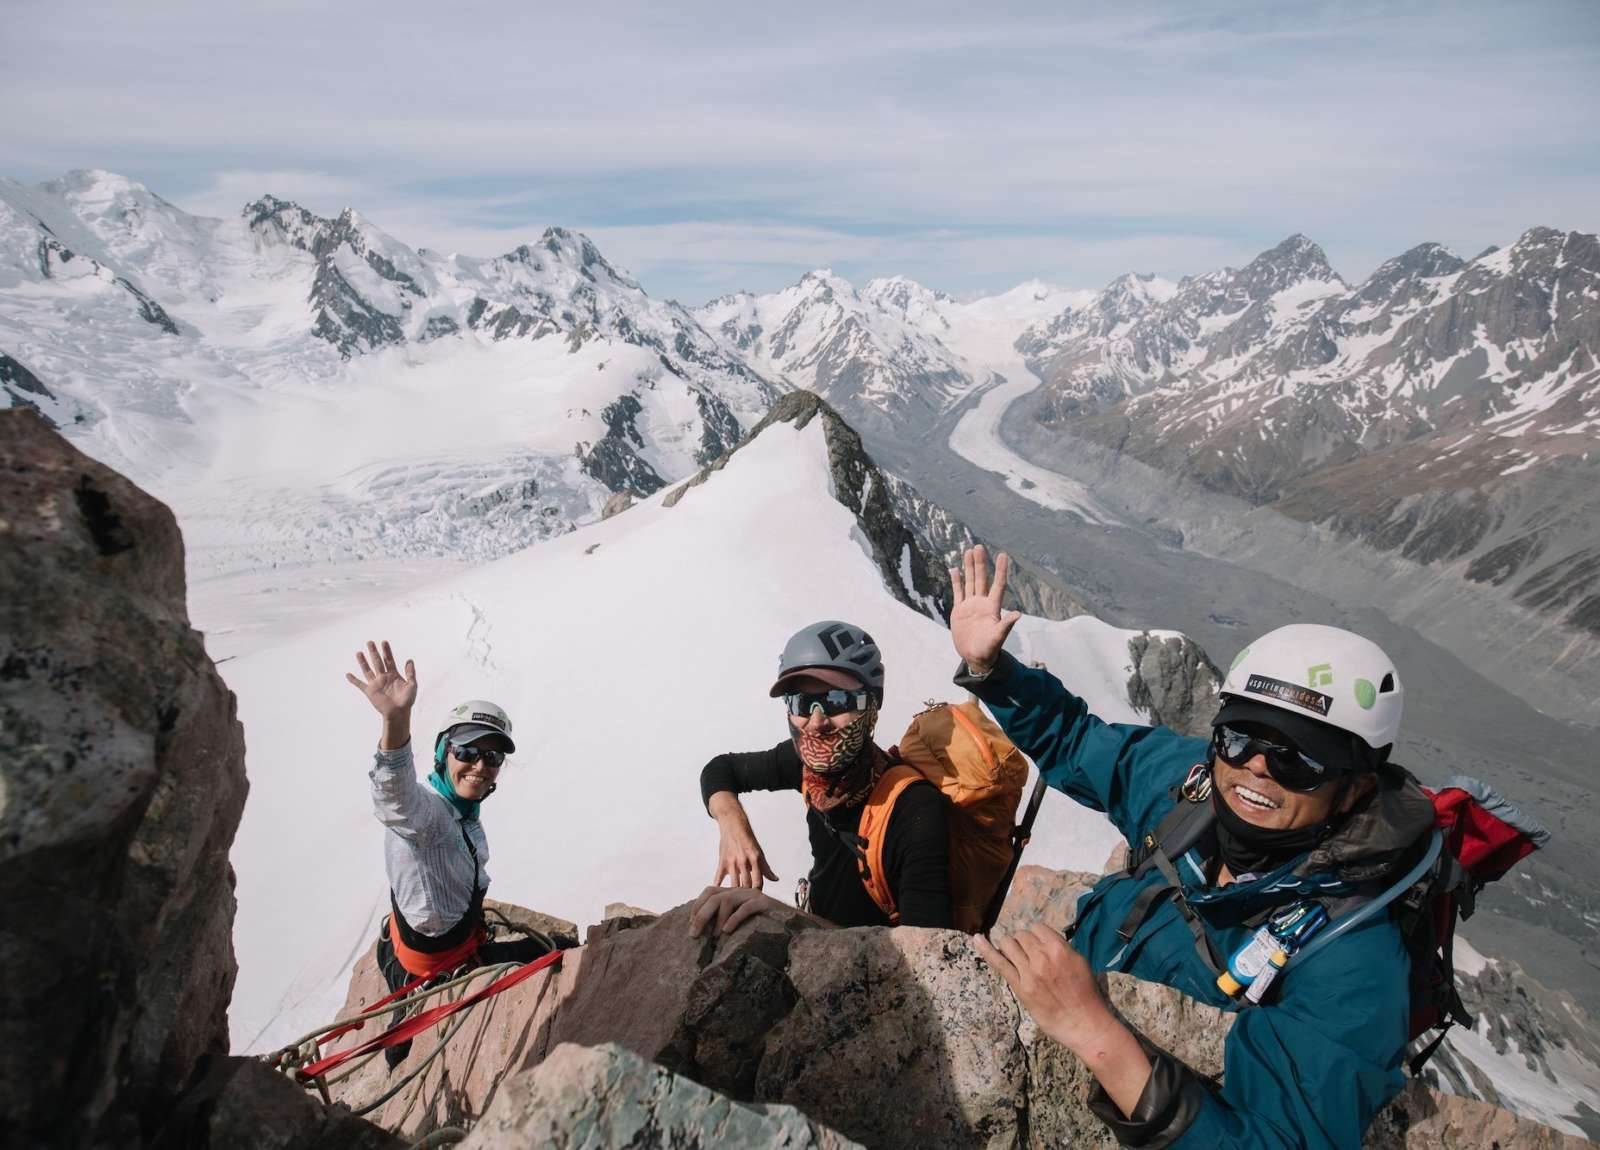 Students on a Mountaineering Skills Course with Aspiring Guides' Matt Cherubino